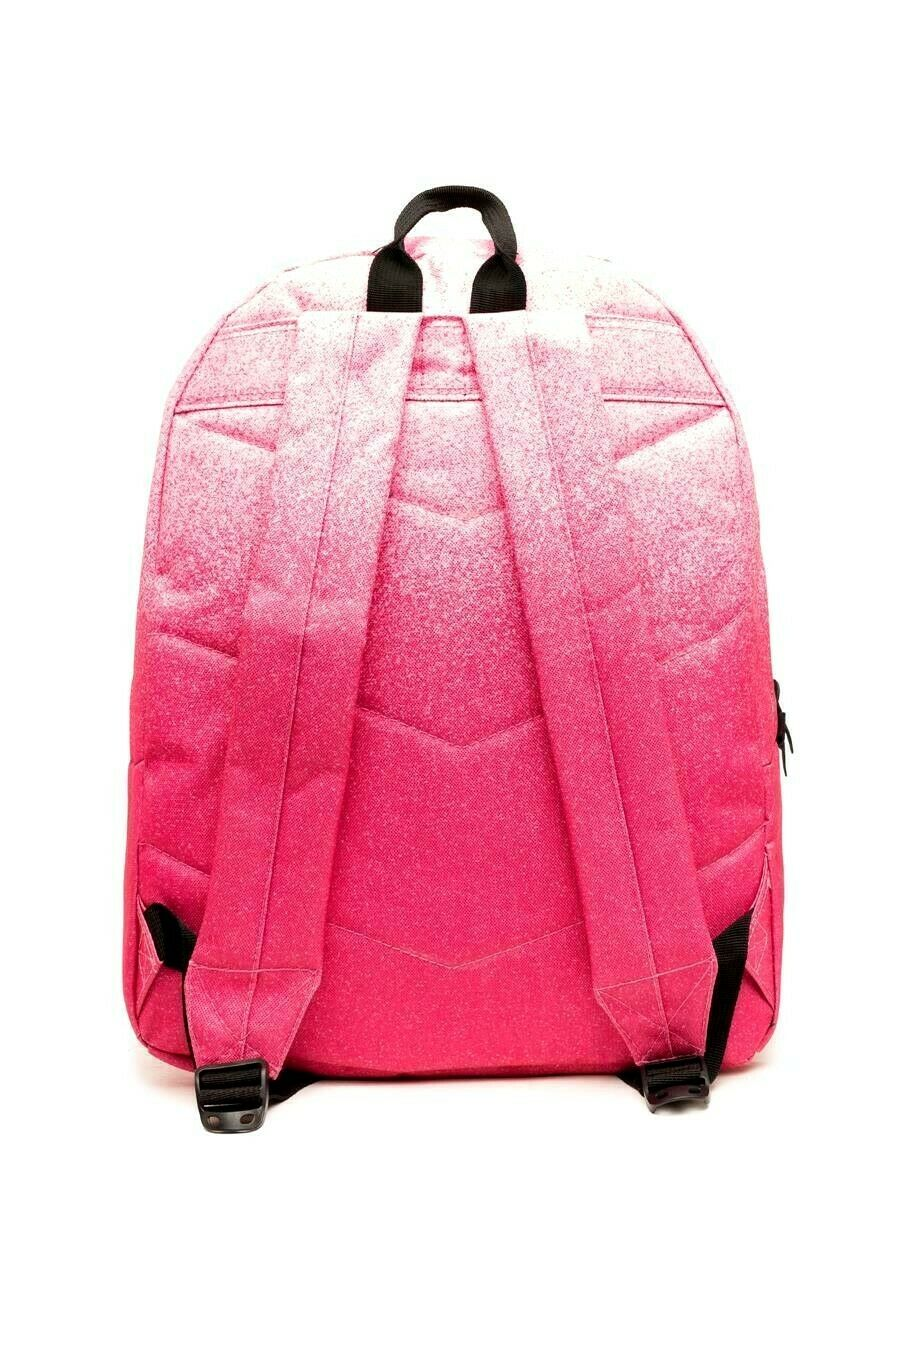 Speckle Fade Backpack - Pink